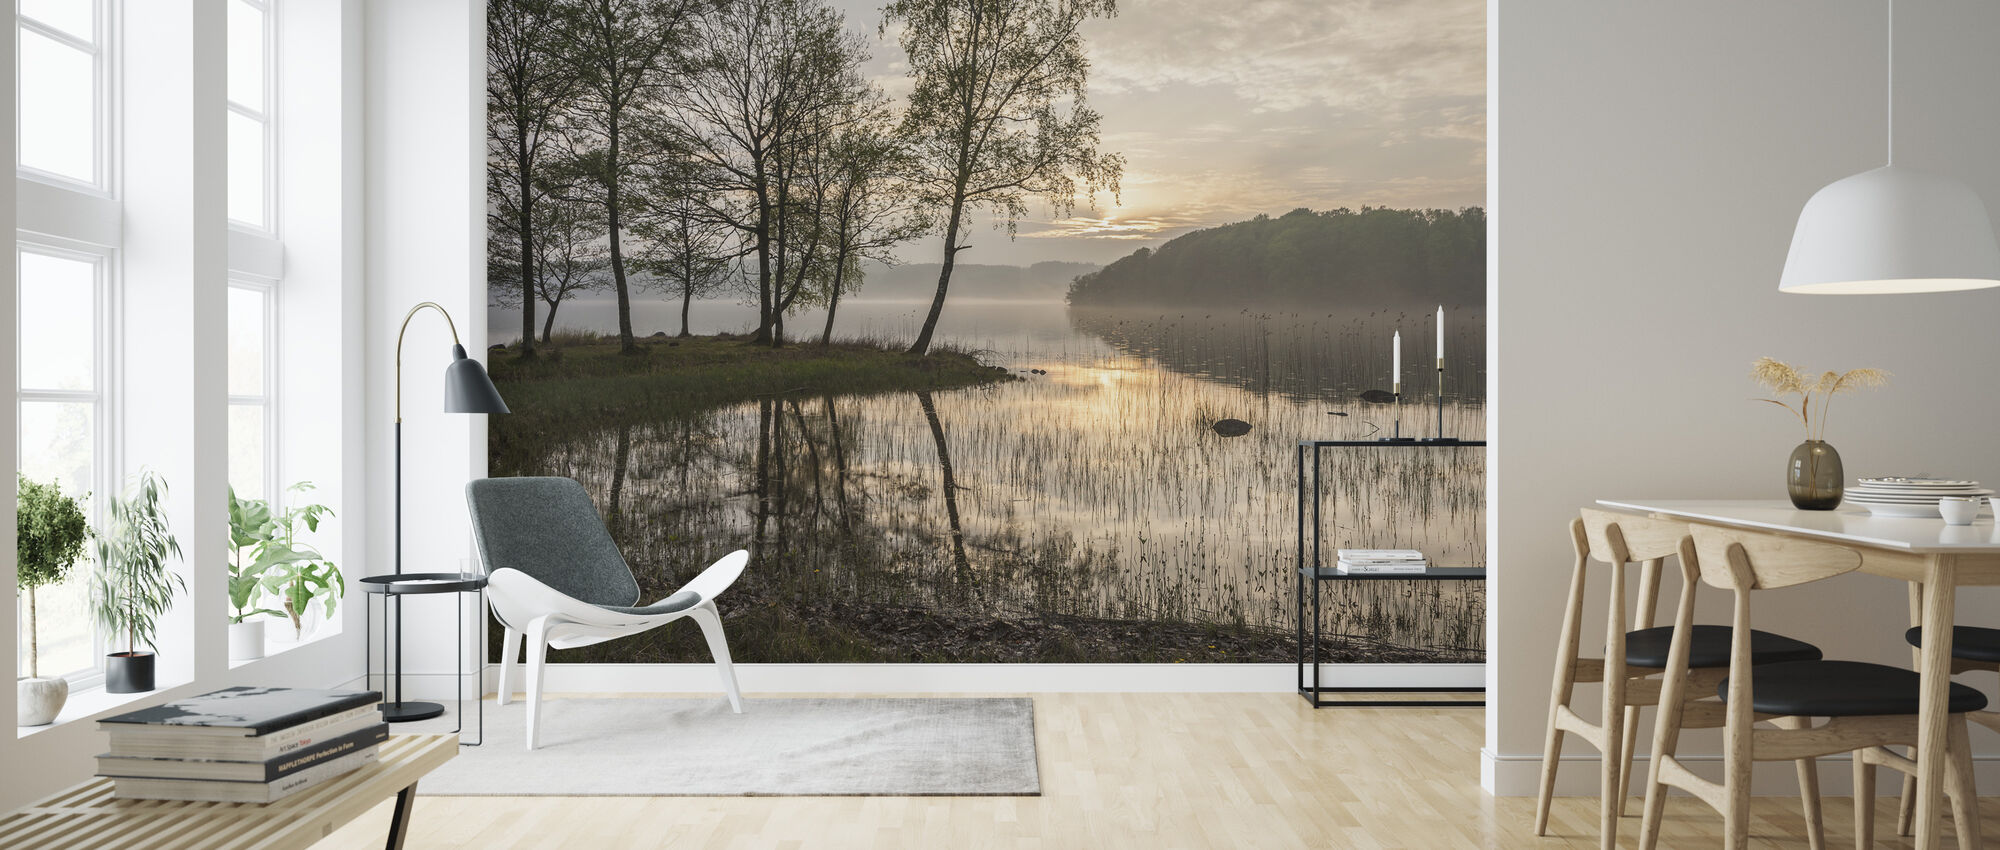 Sunset by the Lake - Wallpaper - Living Room